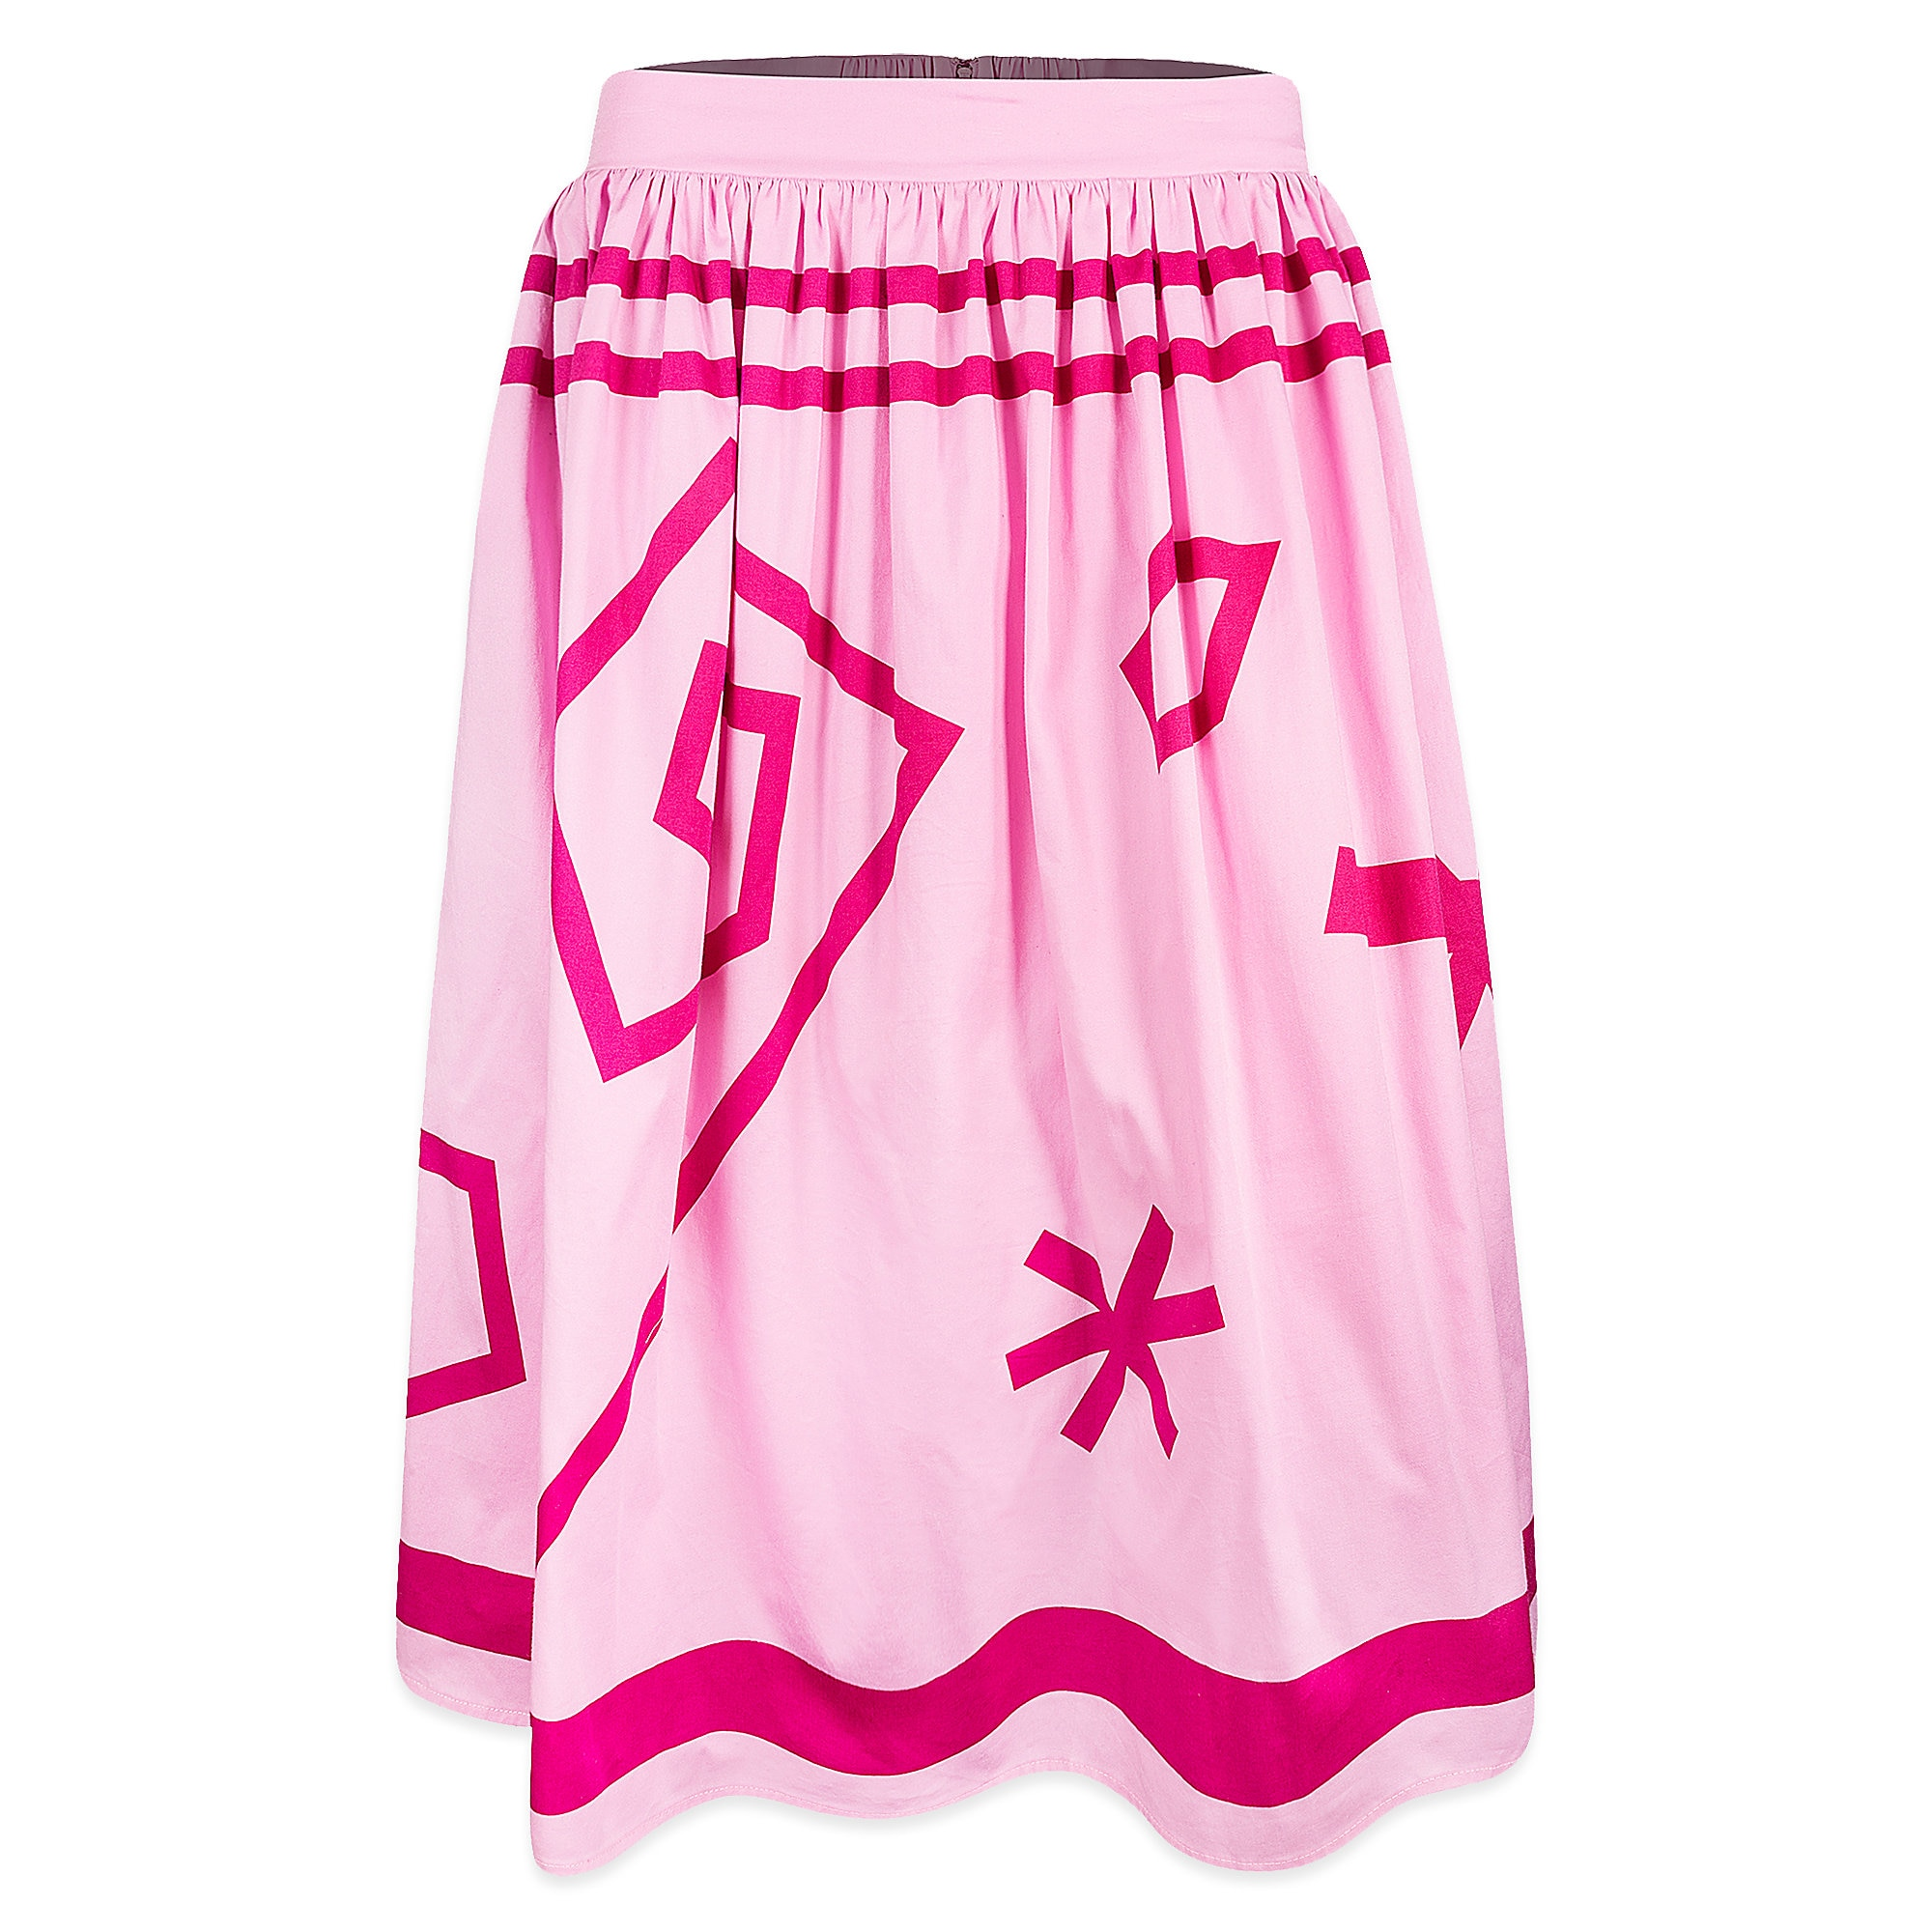 6540da25c1c Product image of mad tea party skirt for women her universe pink jpg  1200x1200 Silhoutt ladies